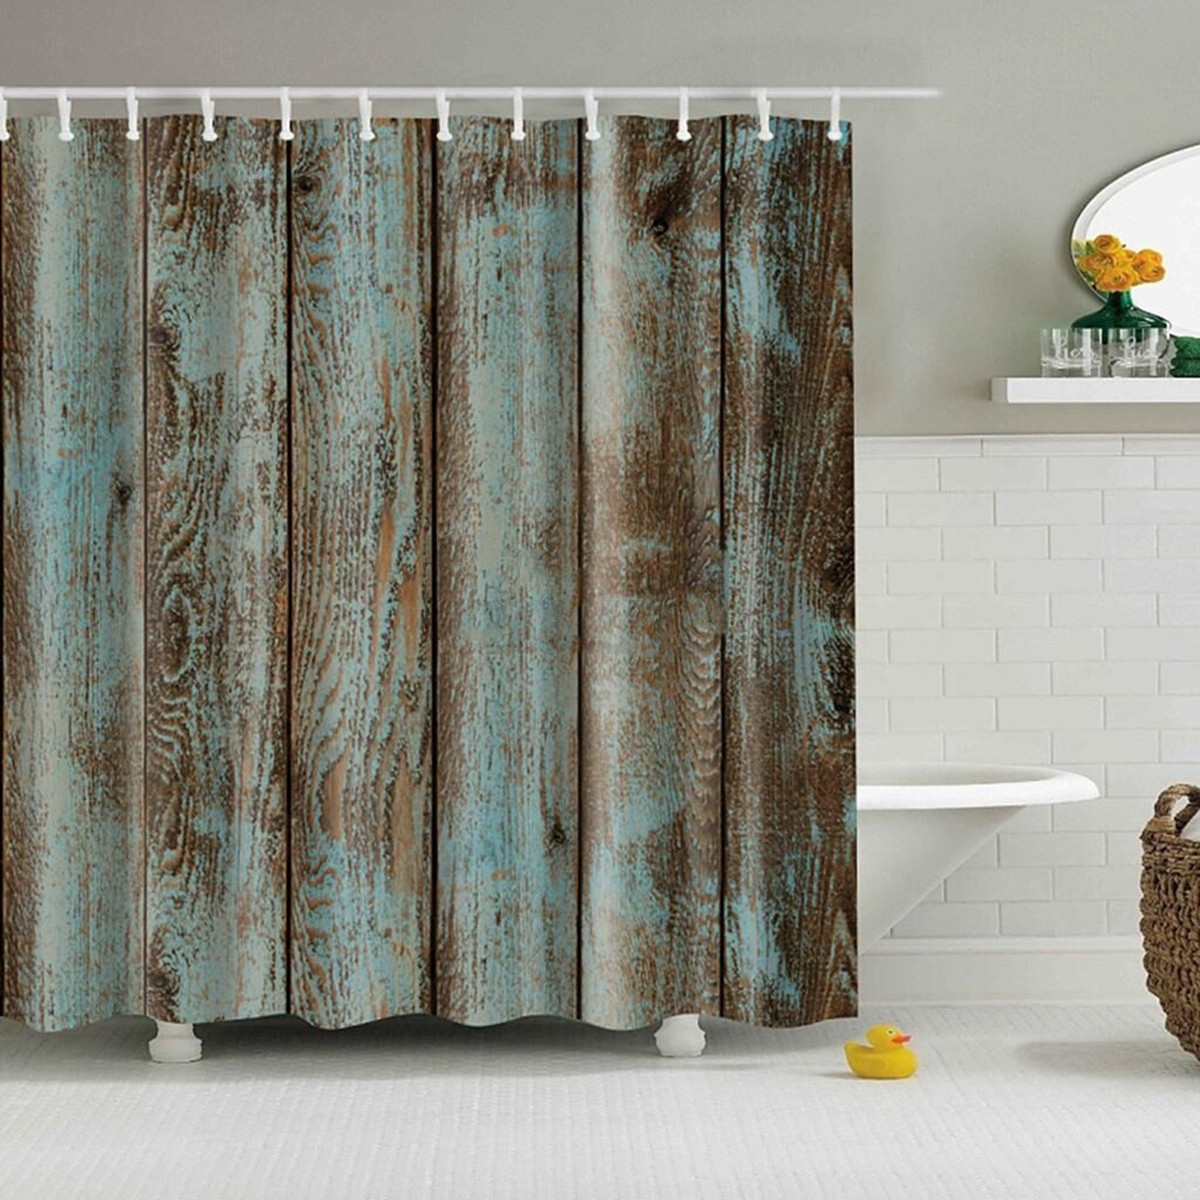 12 Hooks Shabby Wood Waterproof Polyester Fabric Shower Curtain Bathroom Sheer